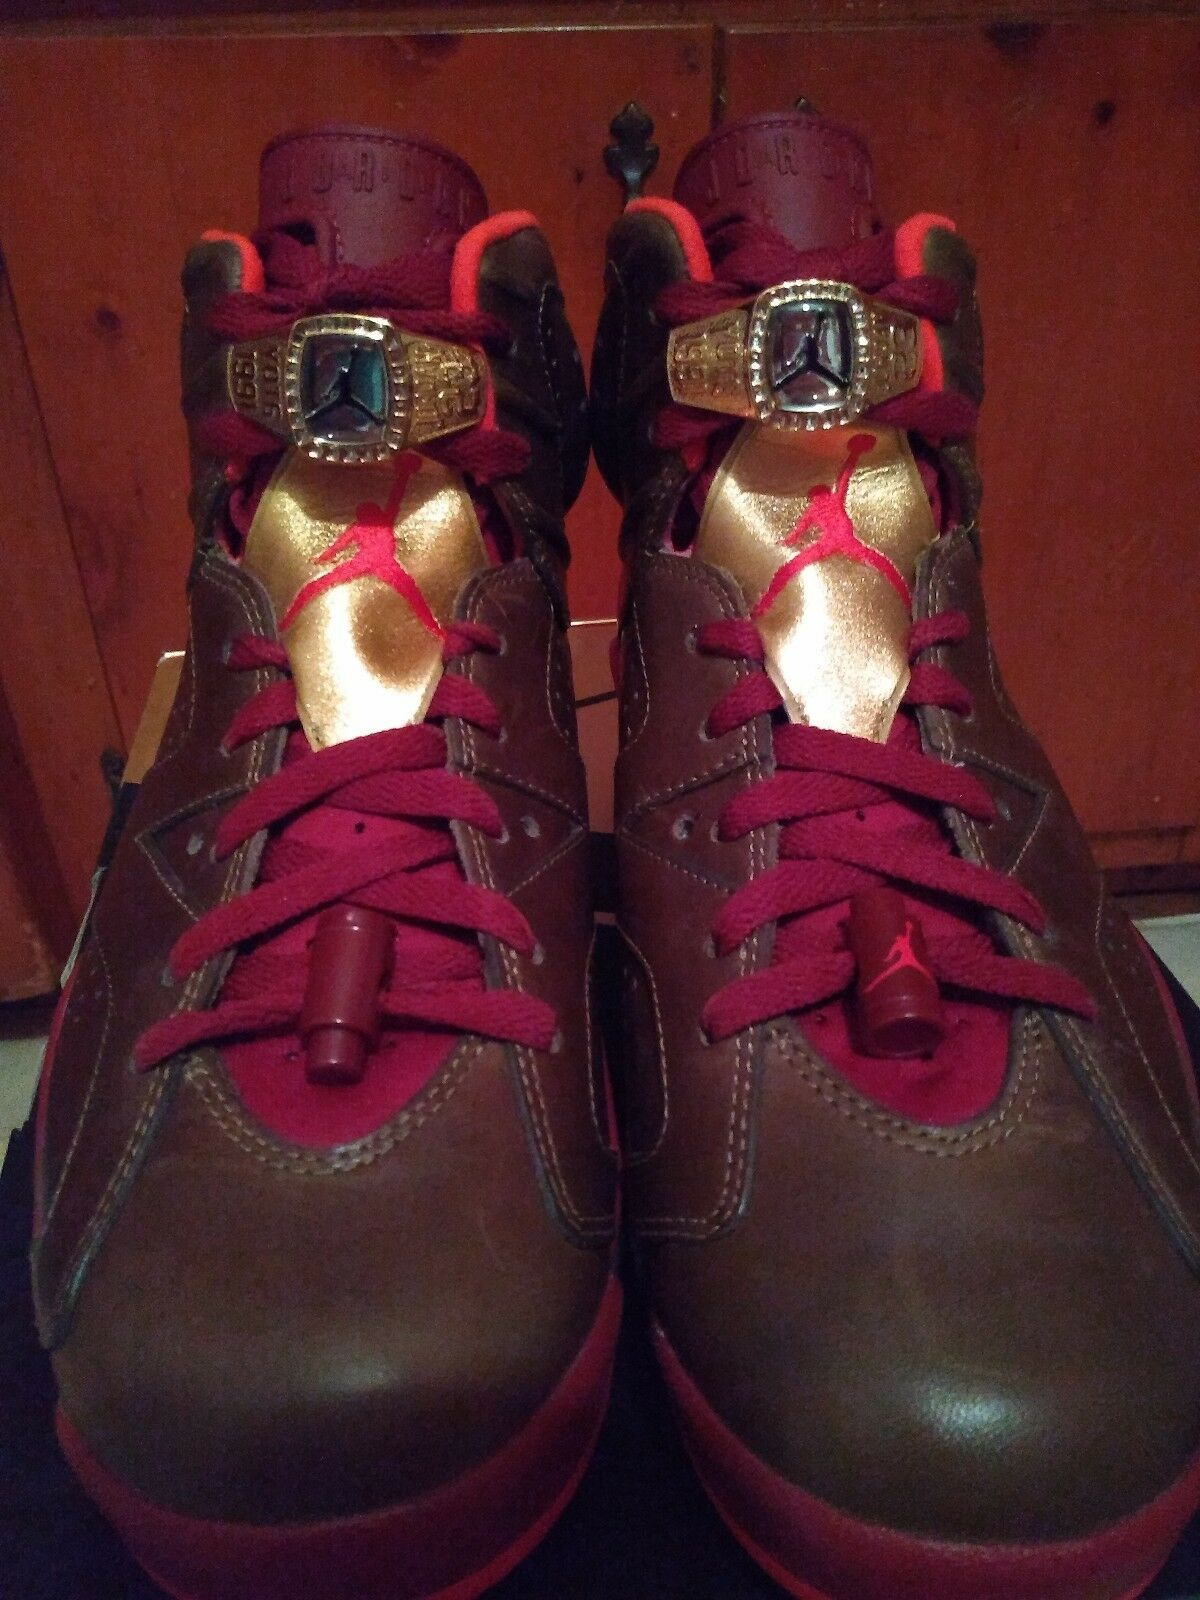 Jordan 6 cigar size 9 brand new ds 100% authentic